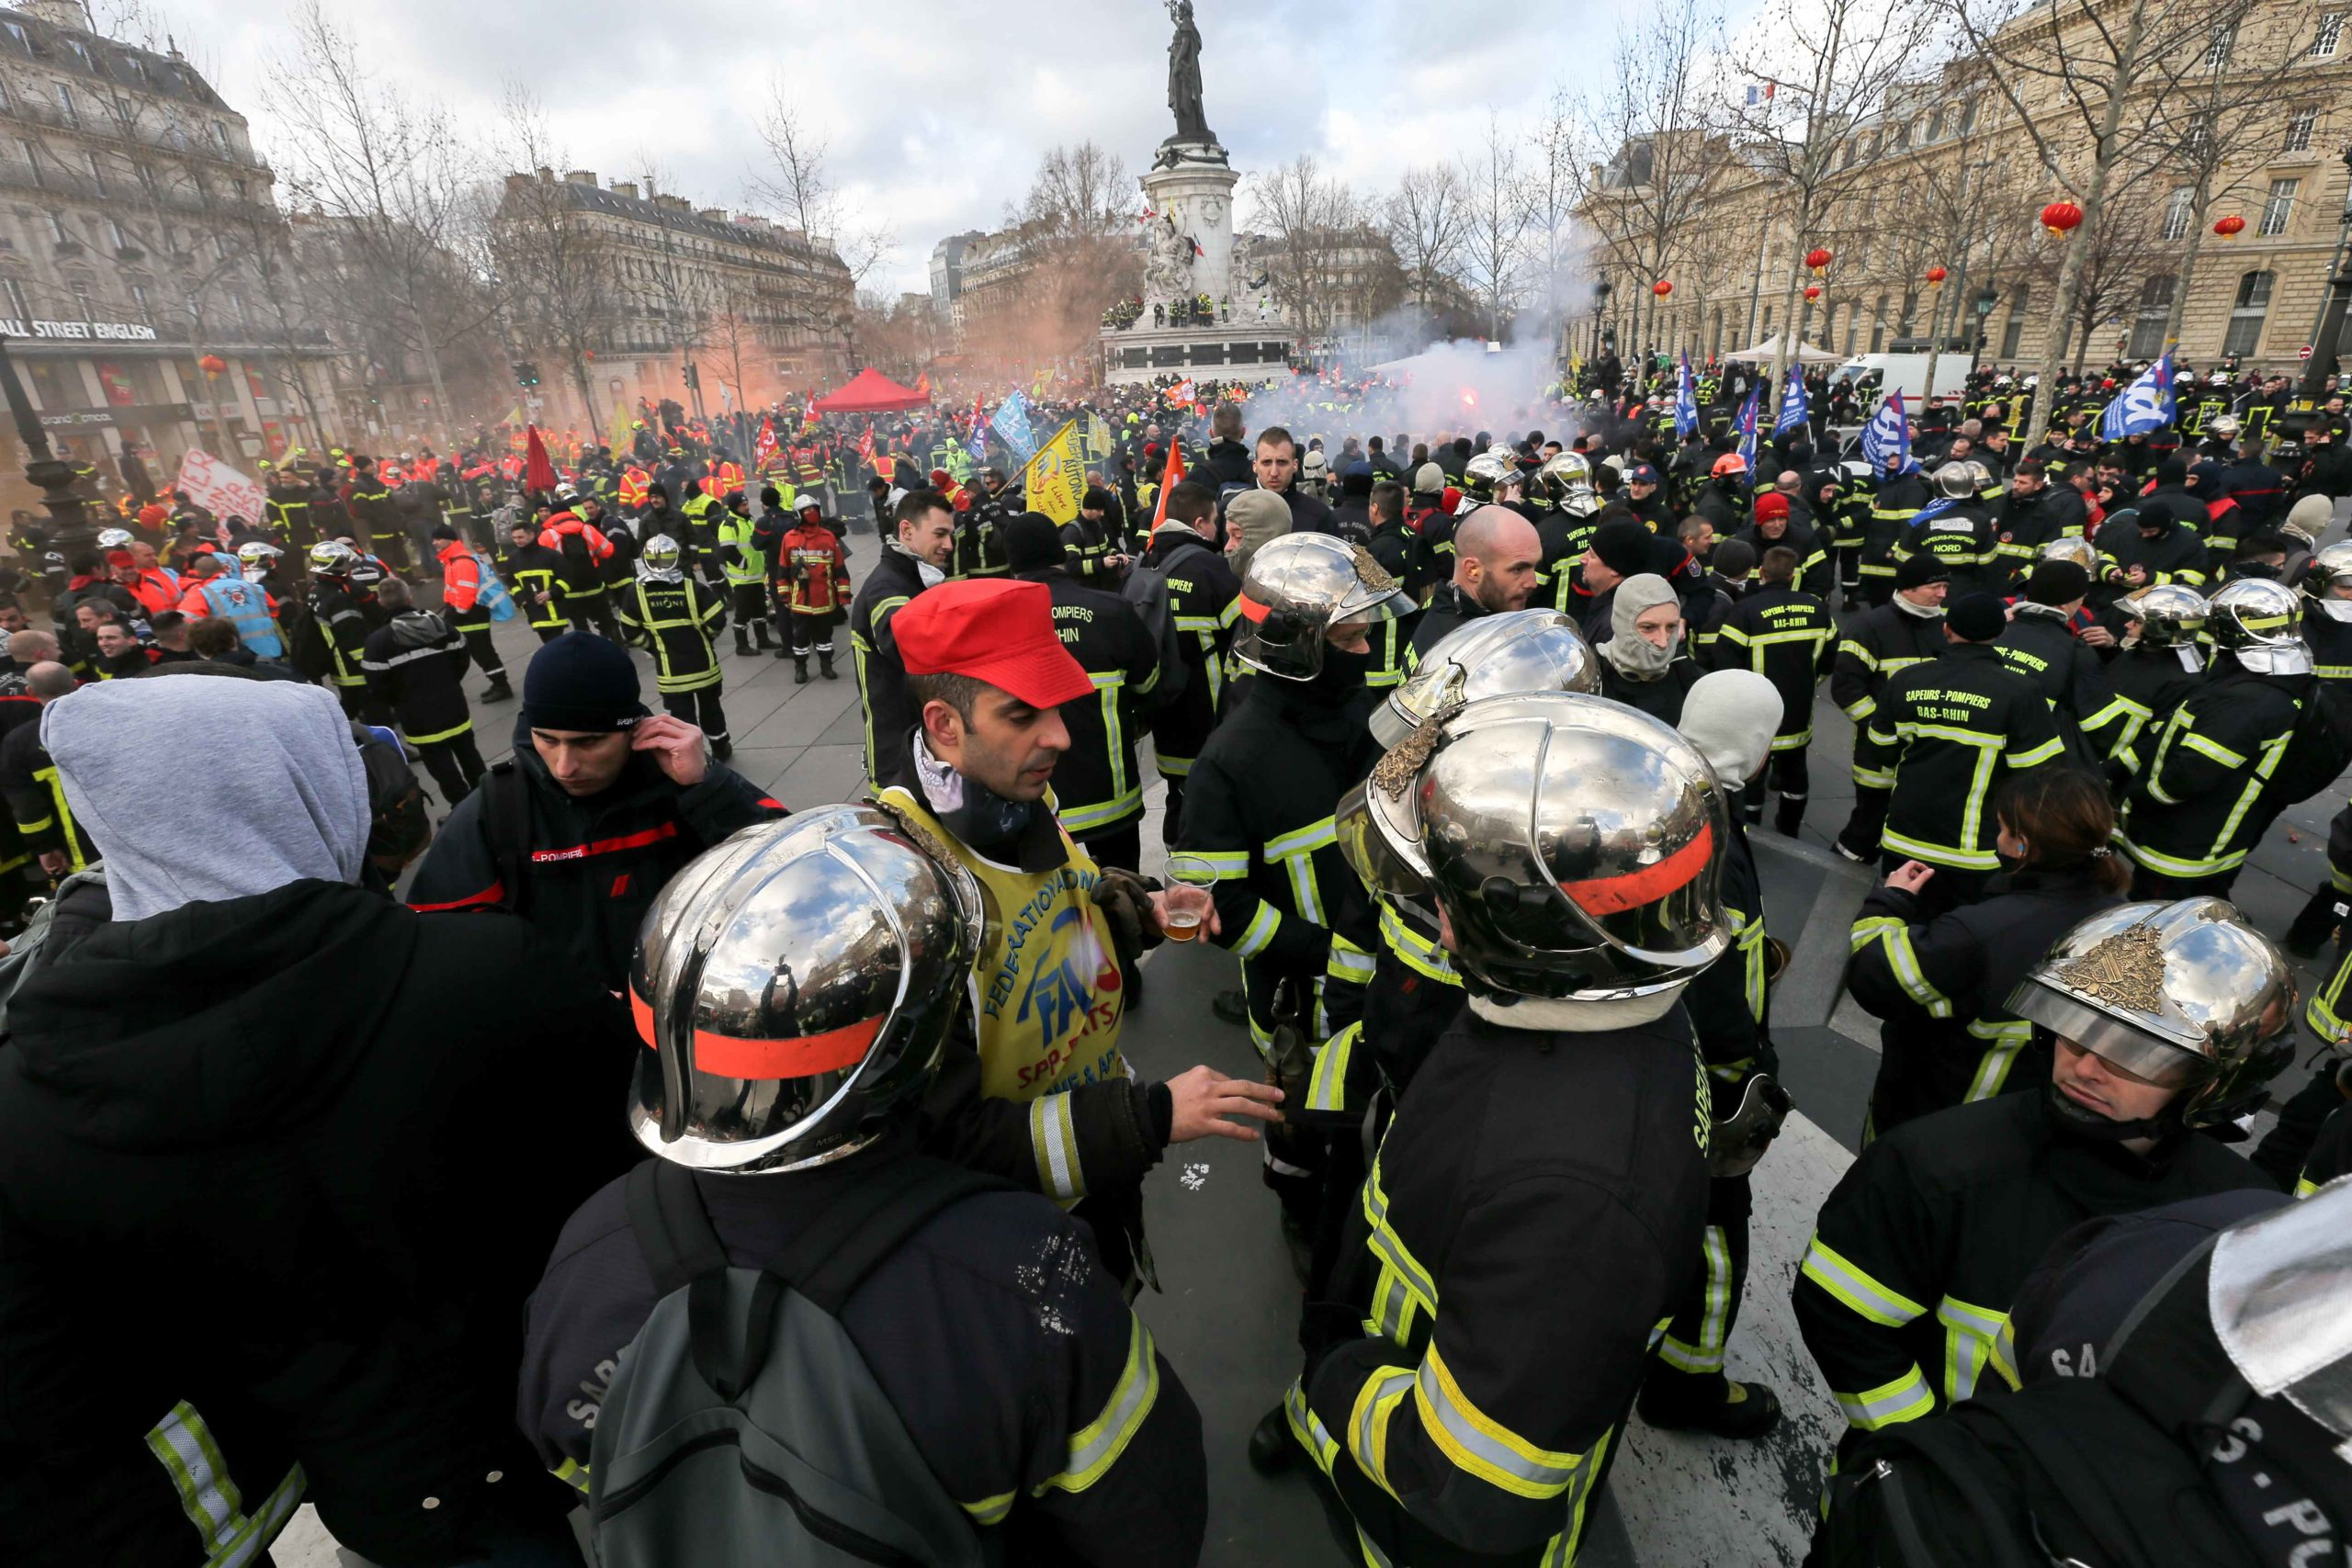 Firefighters gather at Republic Square as they take part in a demonstration to protest against French government's plan to overhaul the country's retirement system in Paris, on January 28, 2020.